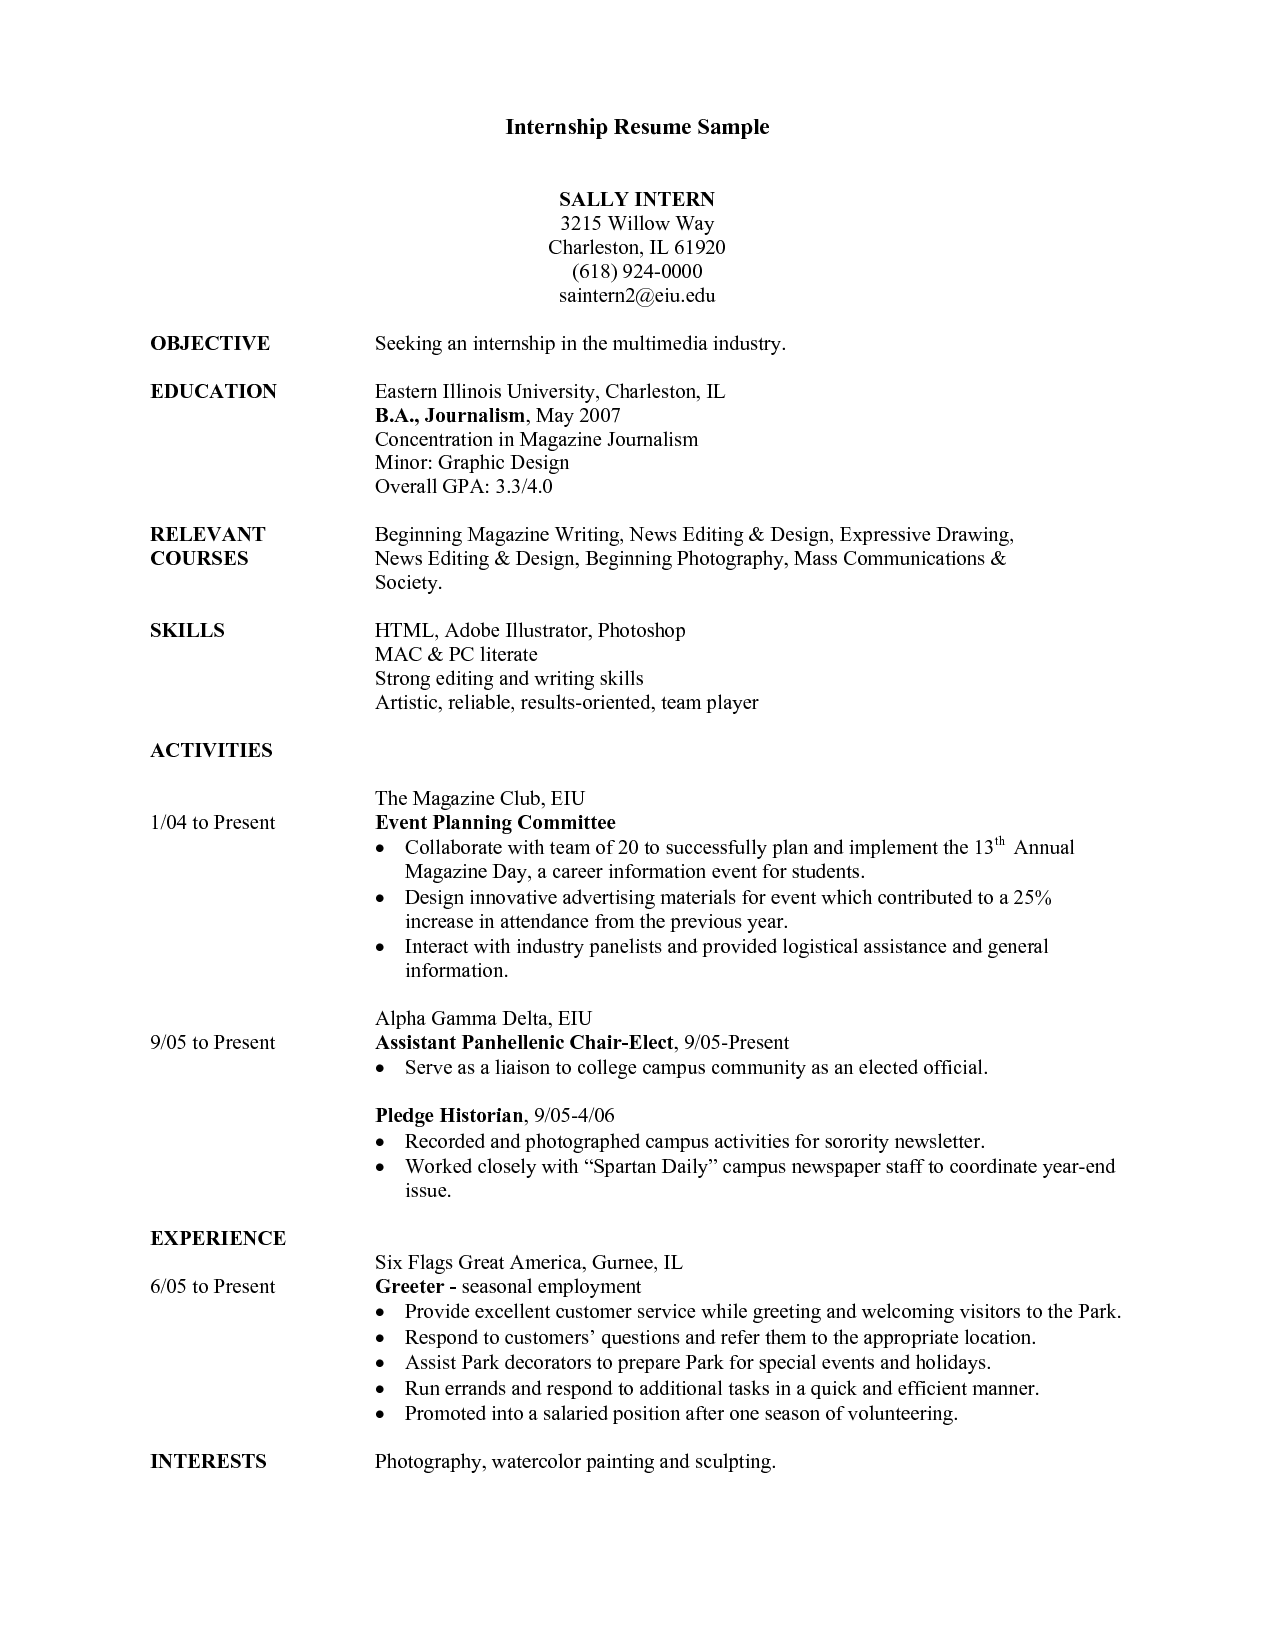 Student Resume Example Sample College Internship Samples Students  Sample College Resume